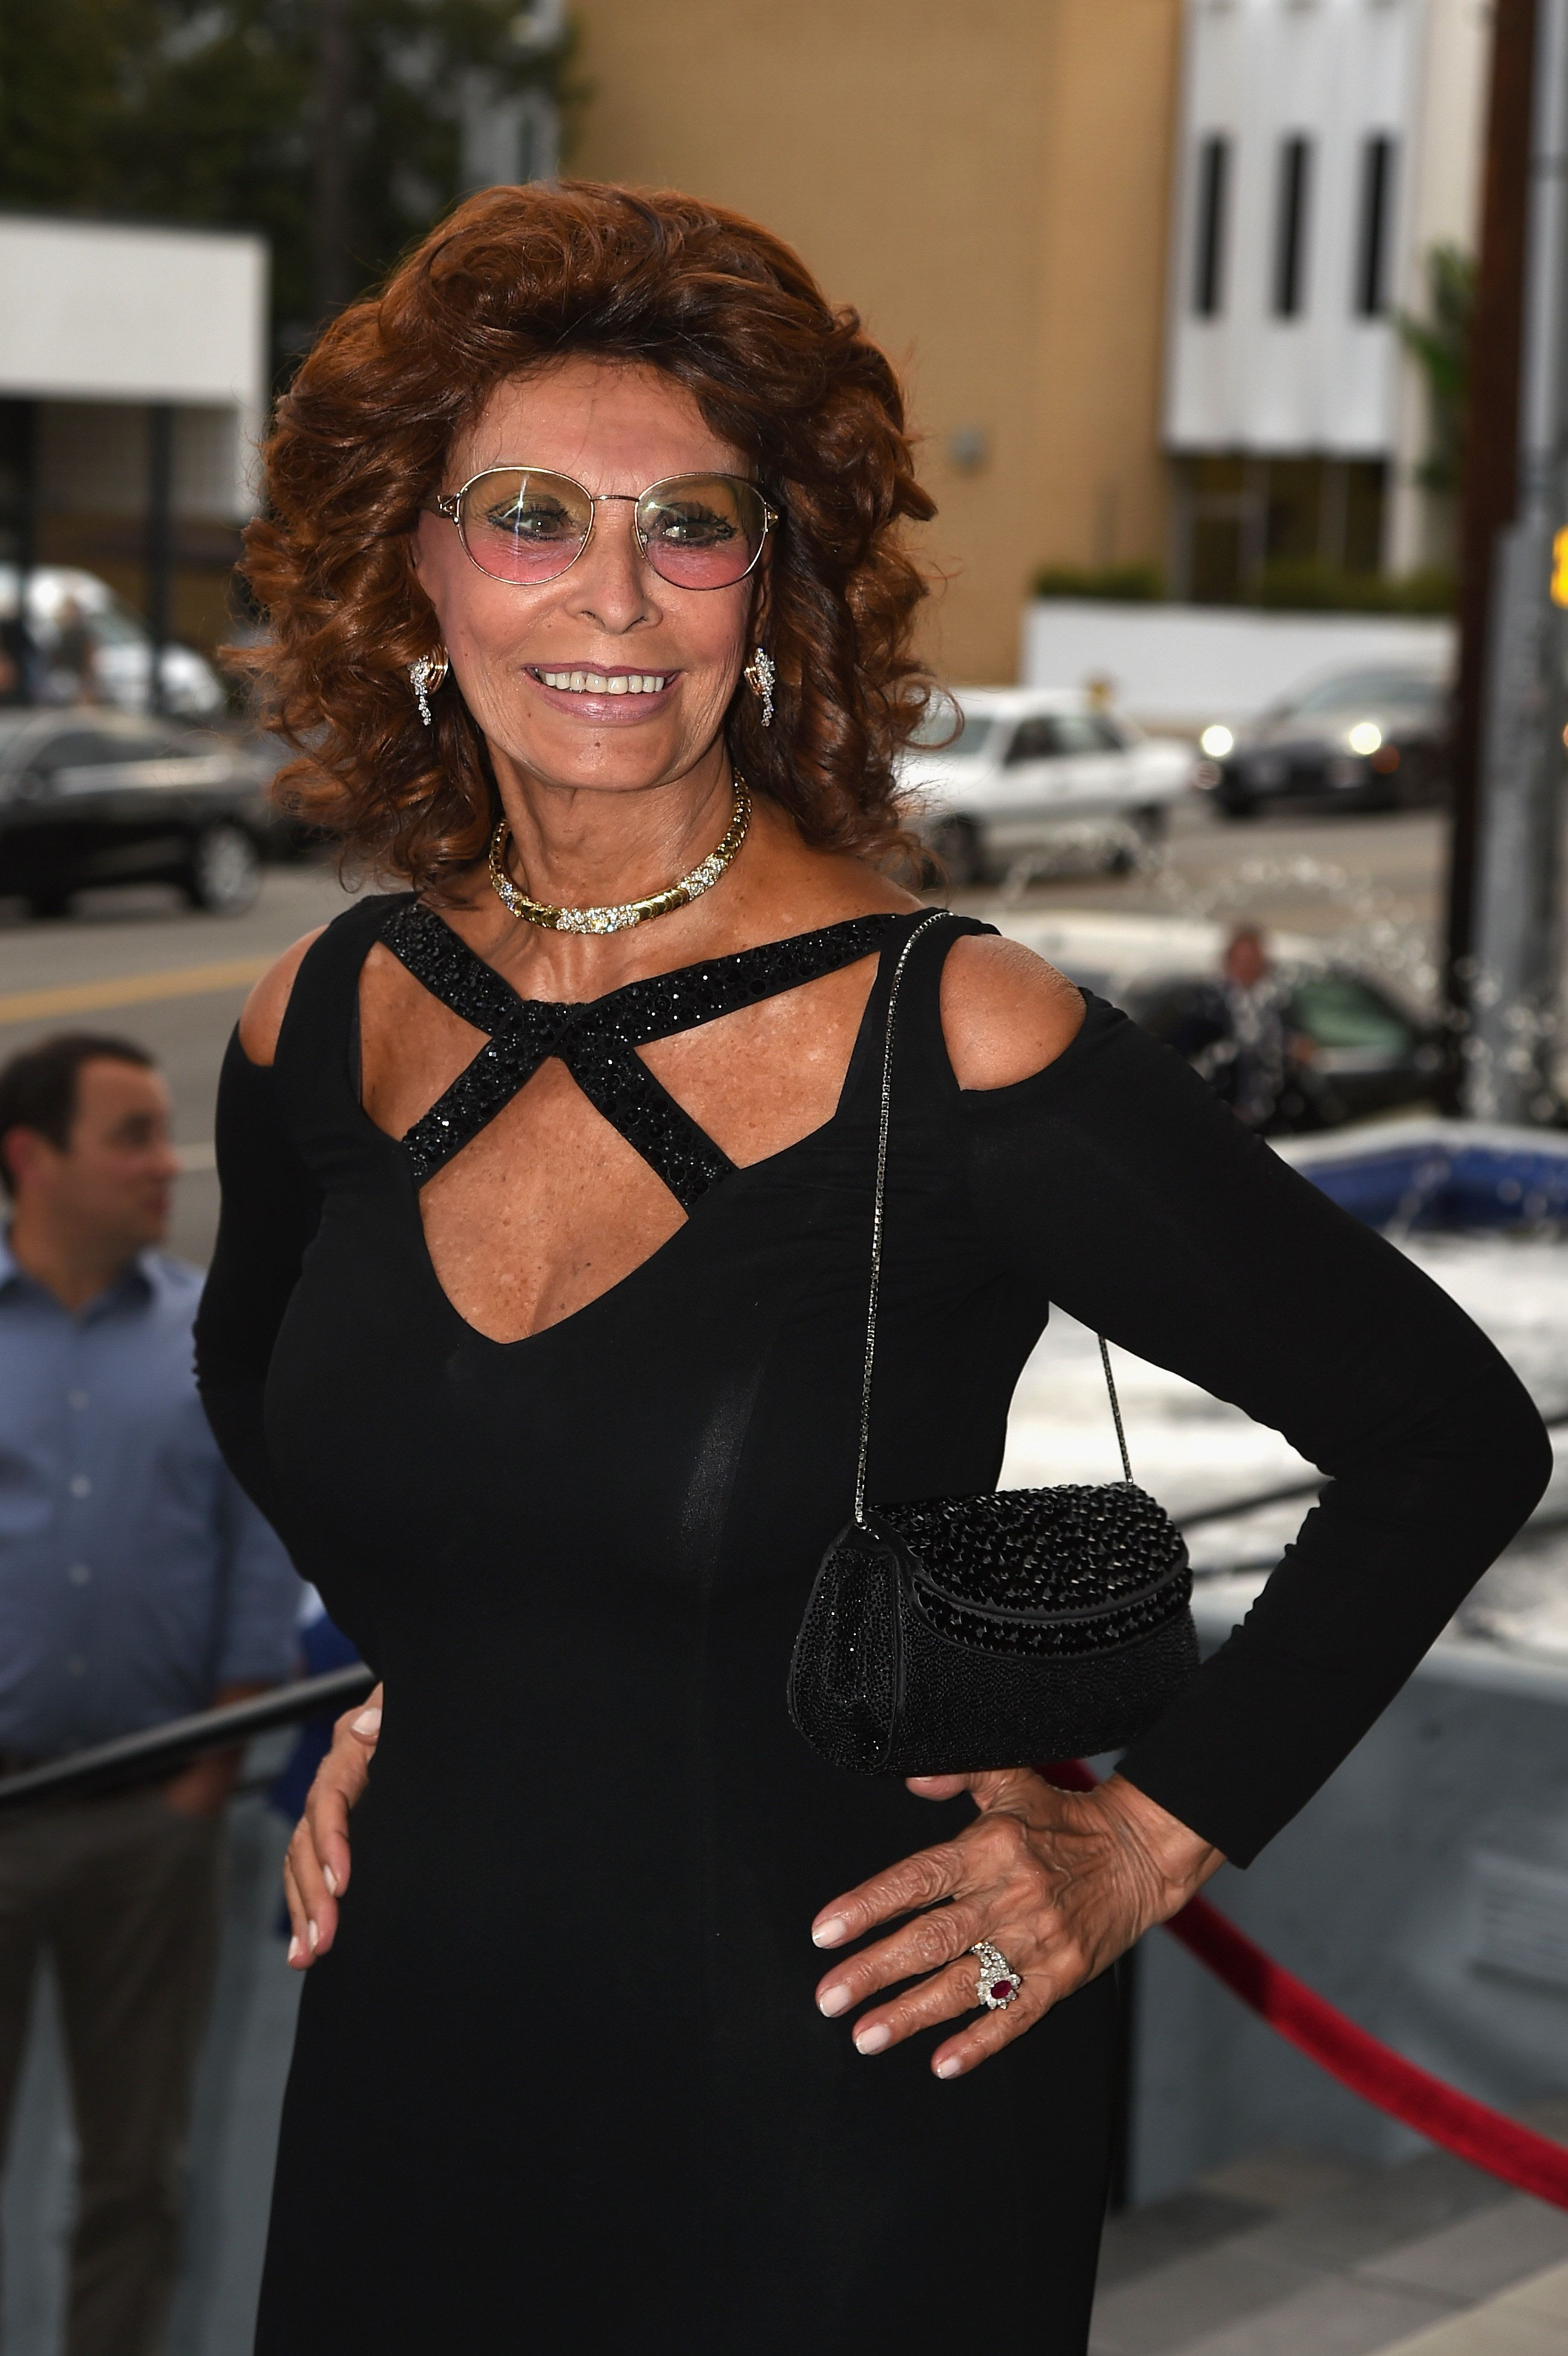 LOS ANGELES, CA - JULY 21:  Actress Sophia Loren attends the premiere of DIRECTV's 'Dark Places' at Harmony Gold Theatre on July 21, 2015 in Los Angeles, California.  (Photo by Kevin Winter/Getty Images)